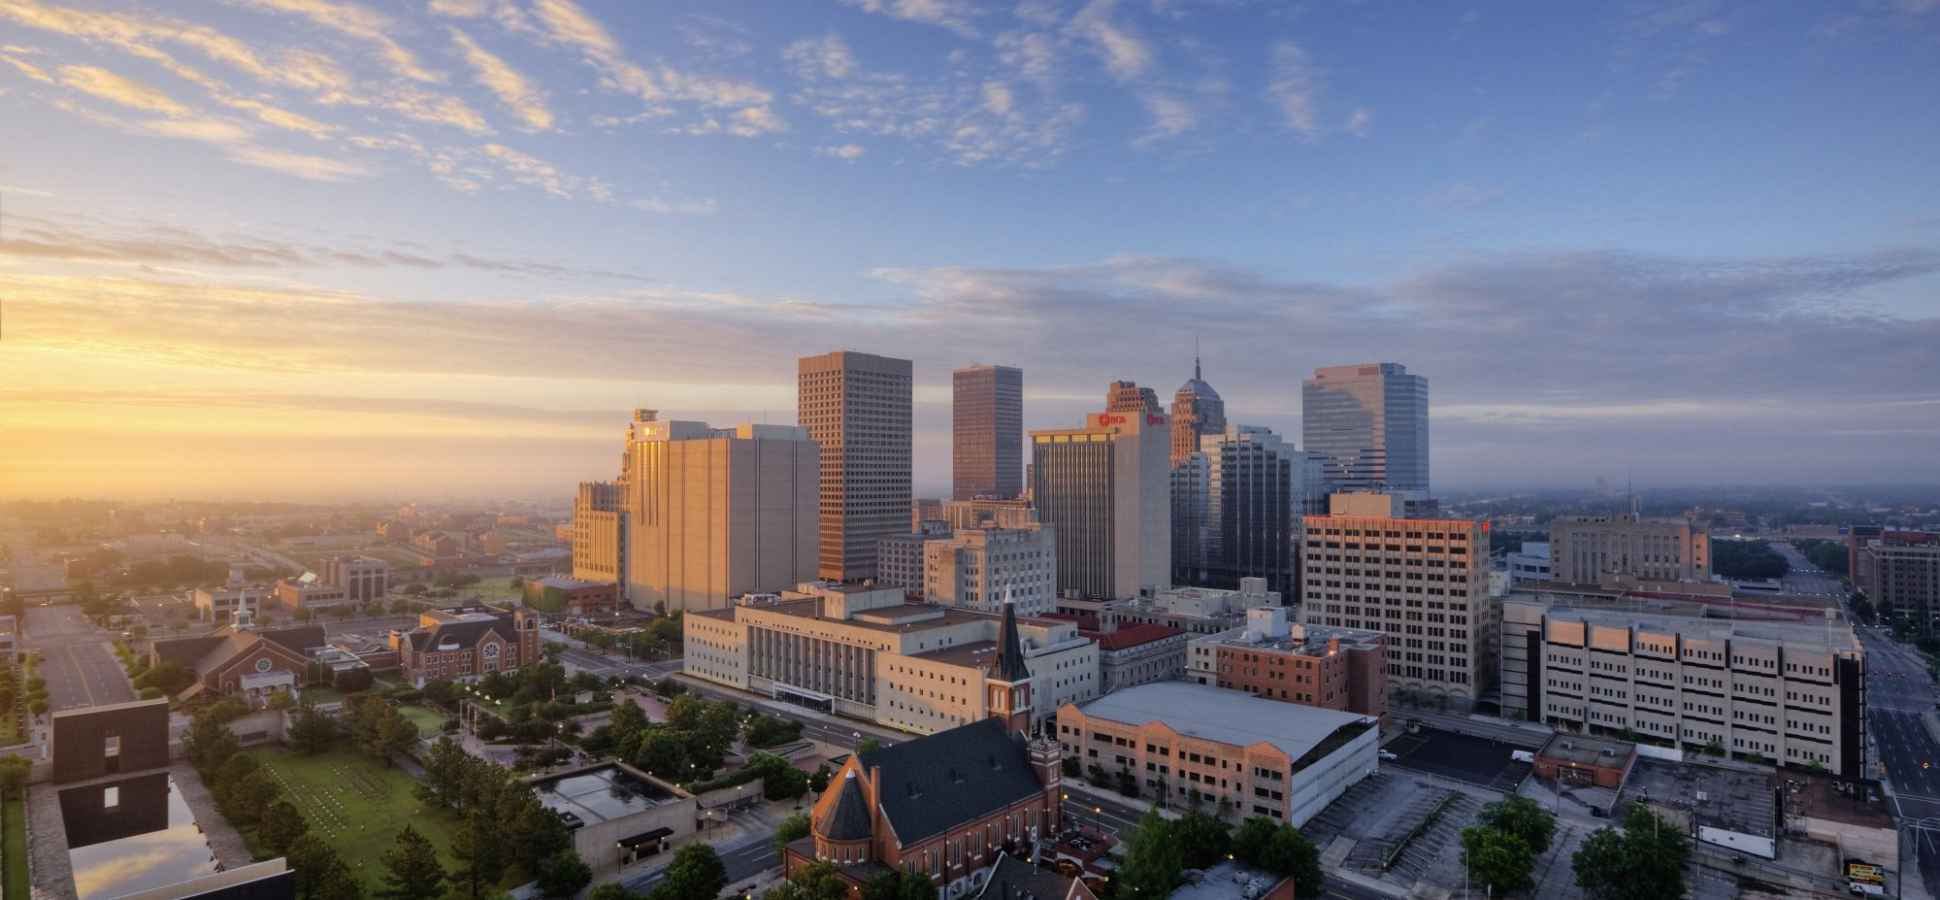 Seed Launching Pad >> In Oklahoma City Entrepreneurs Aim To Create The Next Cool Startup